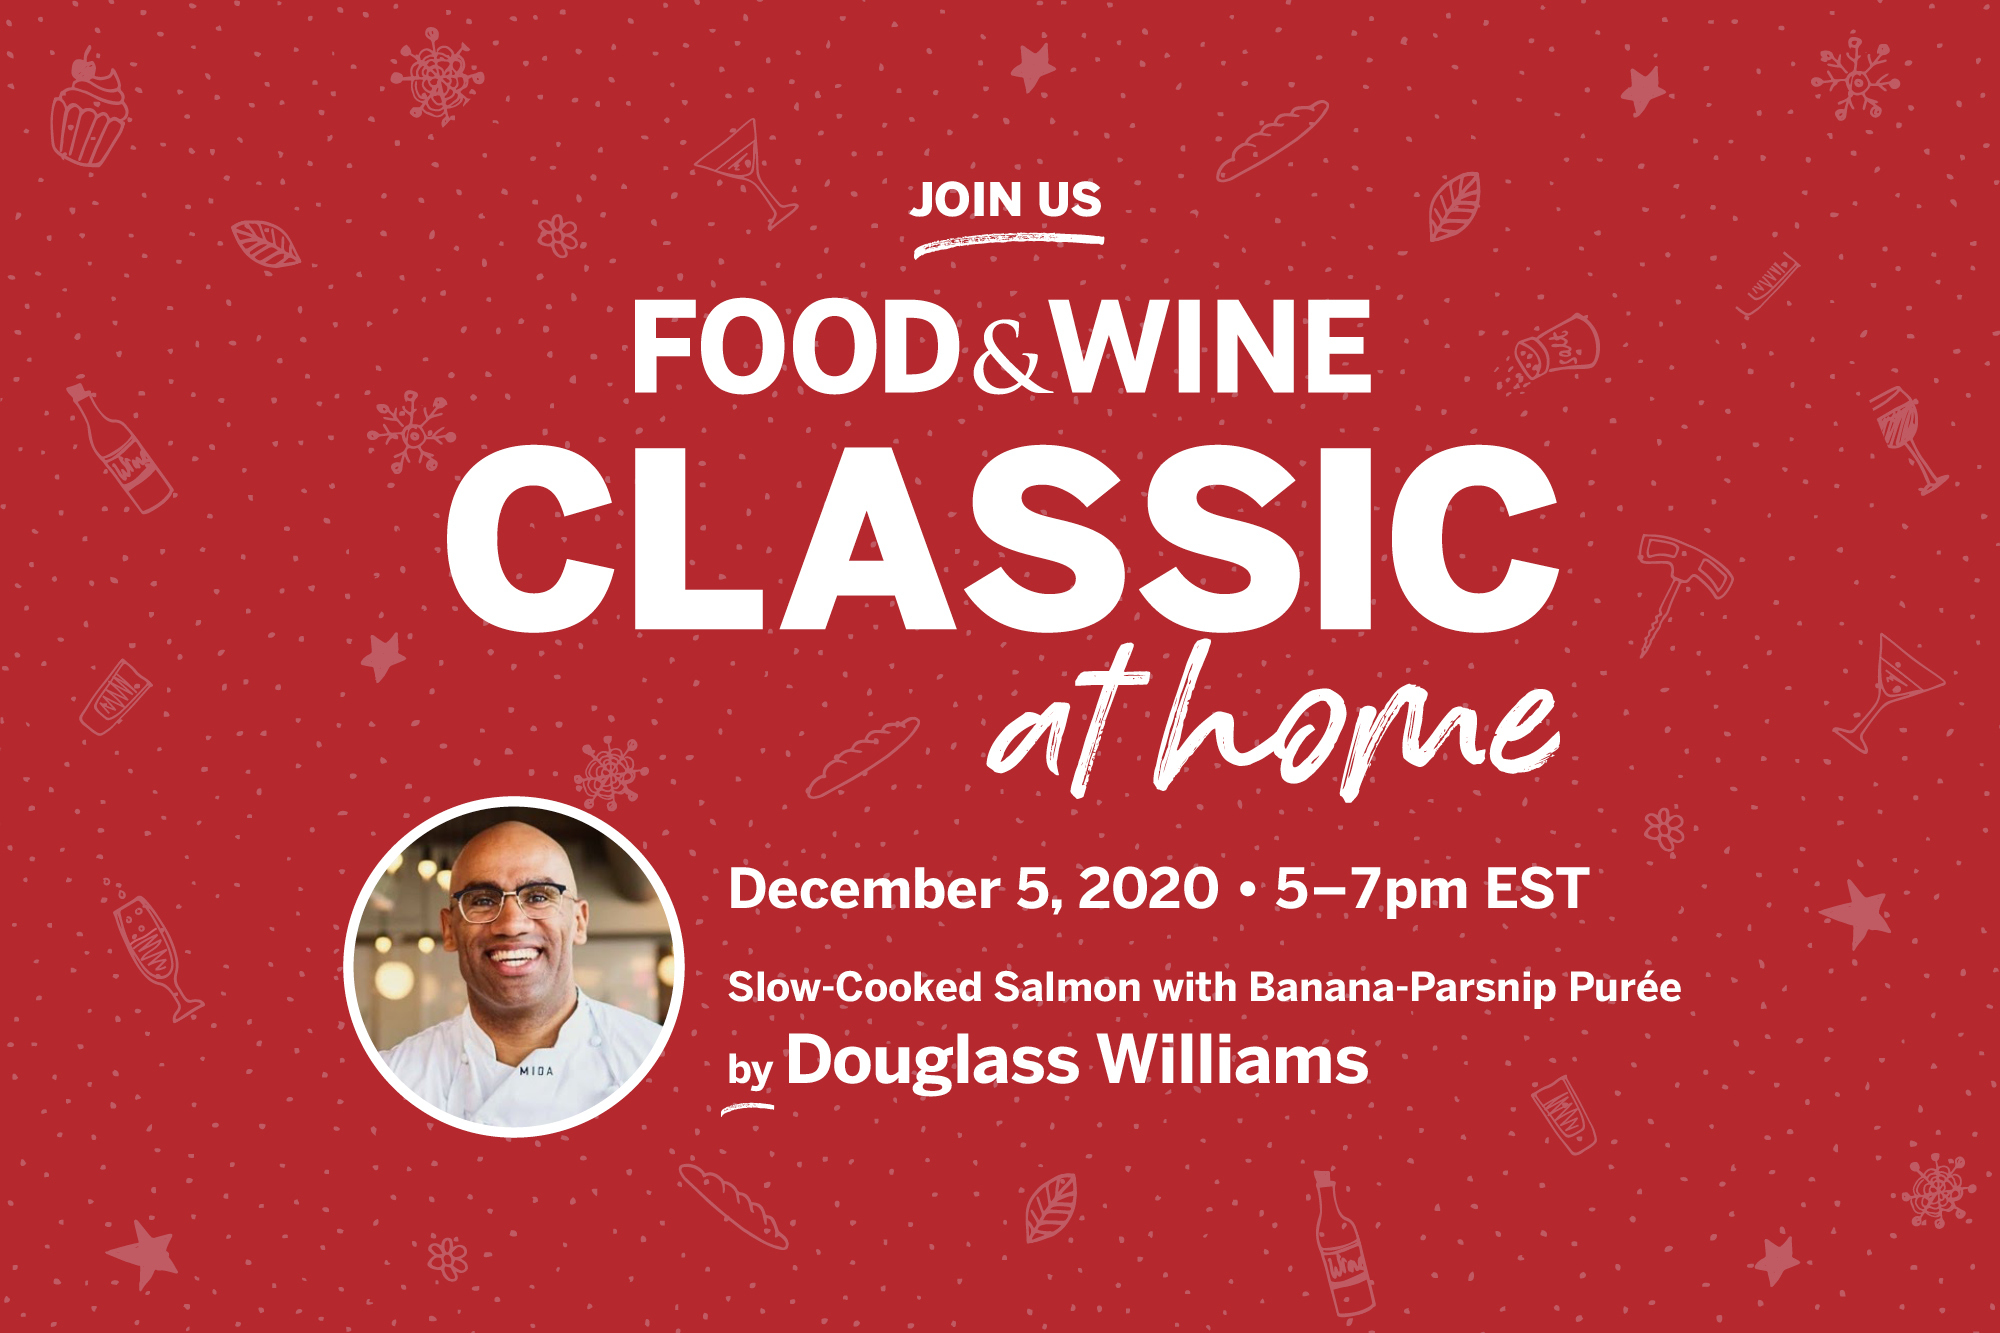 Food & Wine Classic at Home